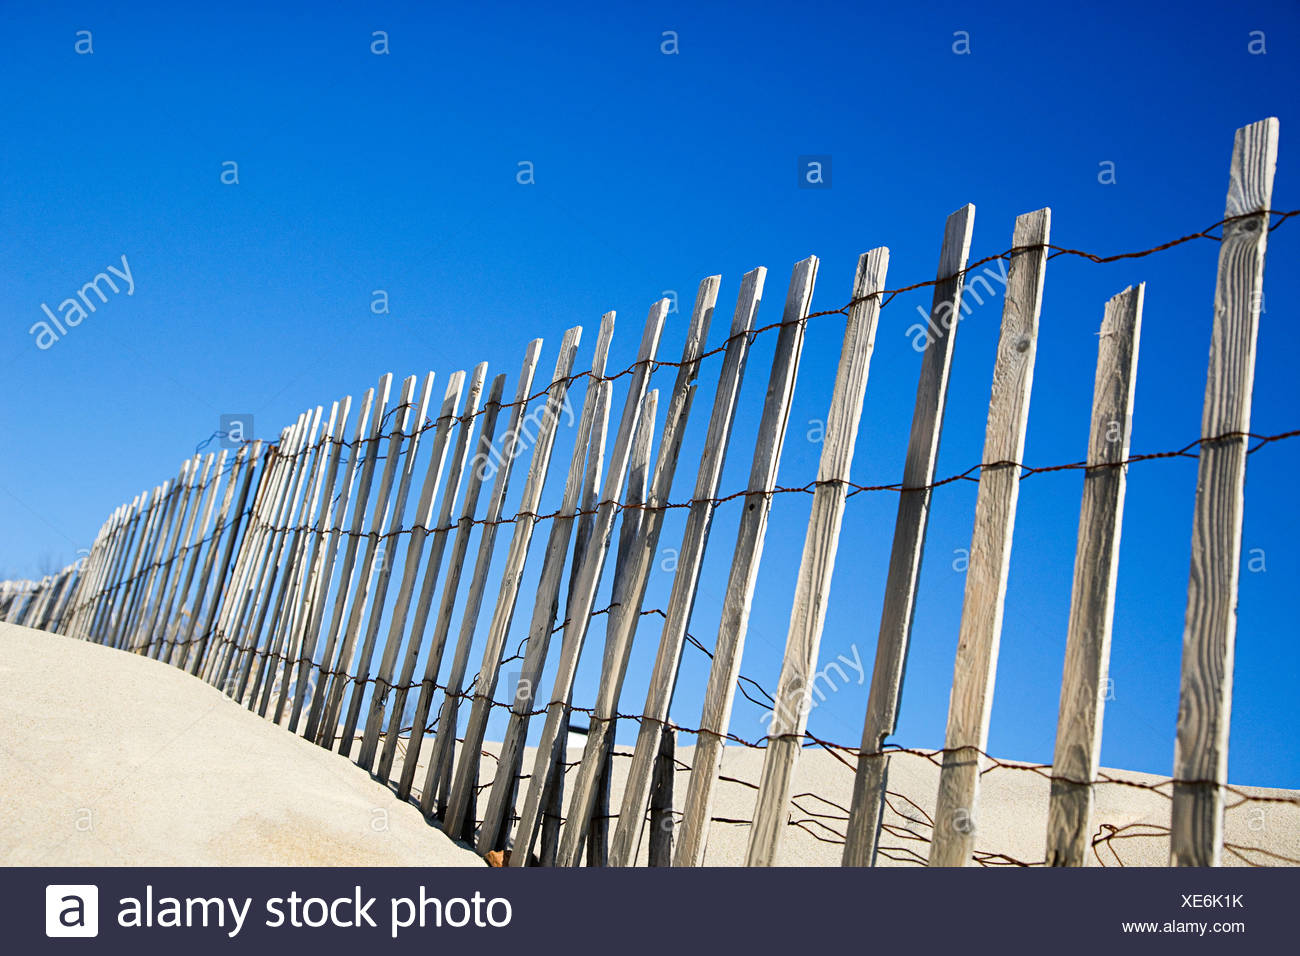 Wooden fence on a beach Stock Photo